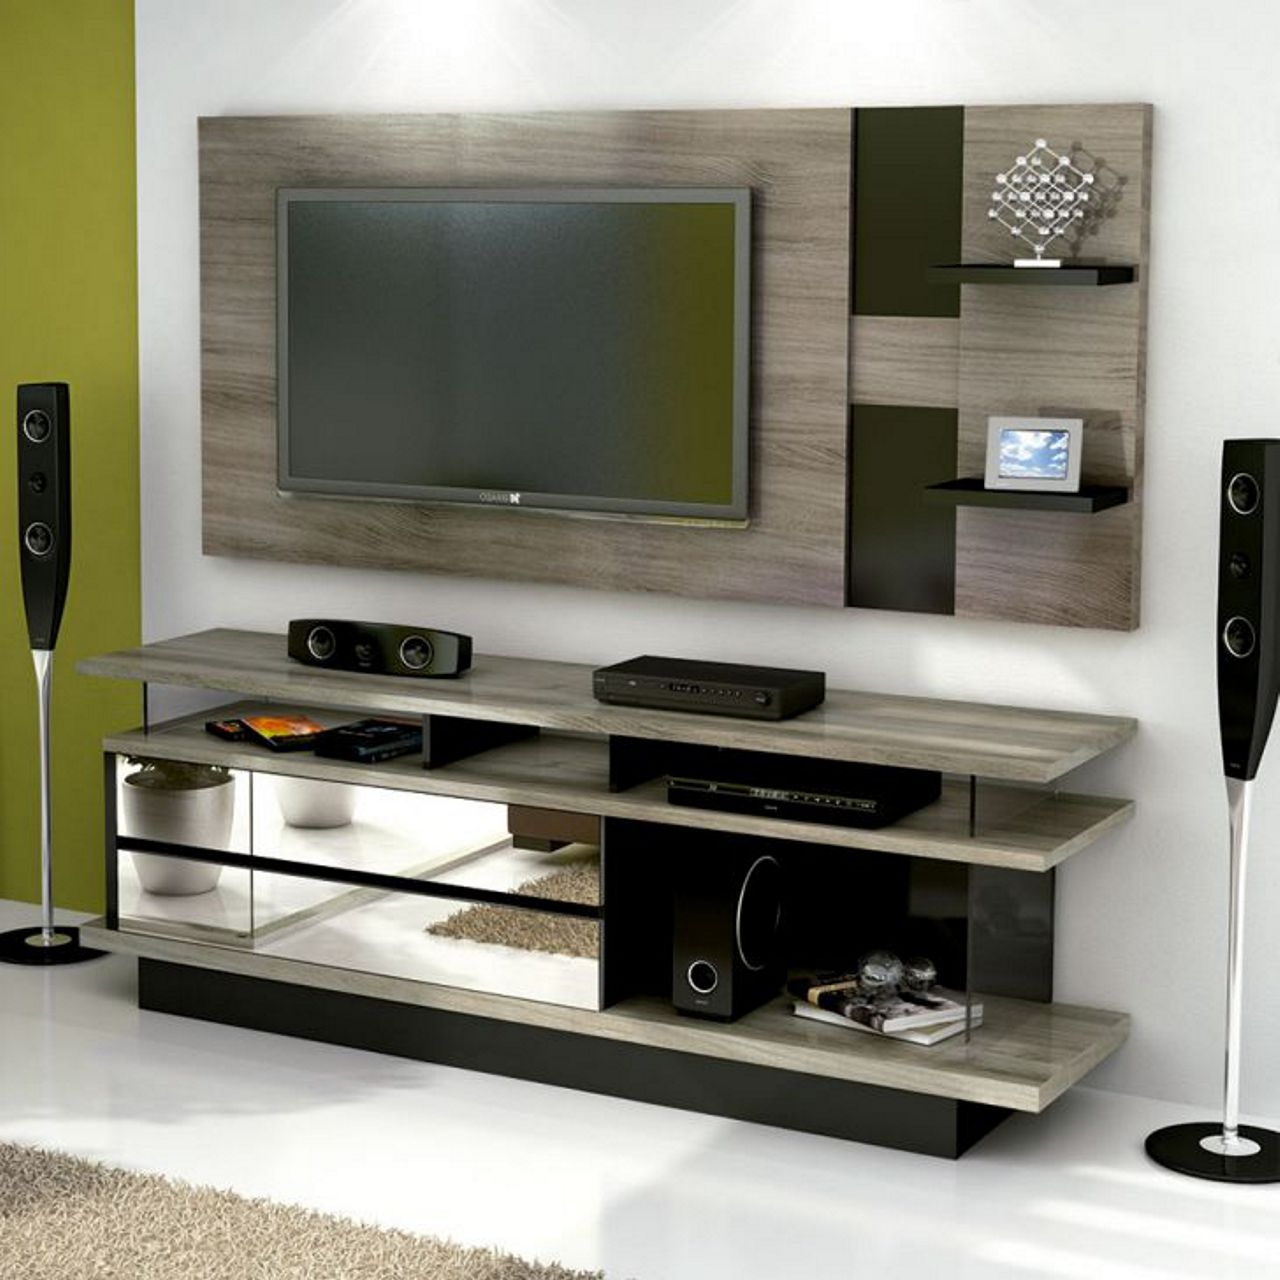 frigidere with 373 Mobilier  Ode Tv 001 on Cuptoare Electrice Cuptor electric Severin TO2056 1600W 230 grade C rotisor negru argintiu 263 Pd moreover  as well 278 Mobila Bucatarie Rouge further Mobila Bucatarie Kadu additionally News news id 24.